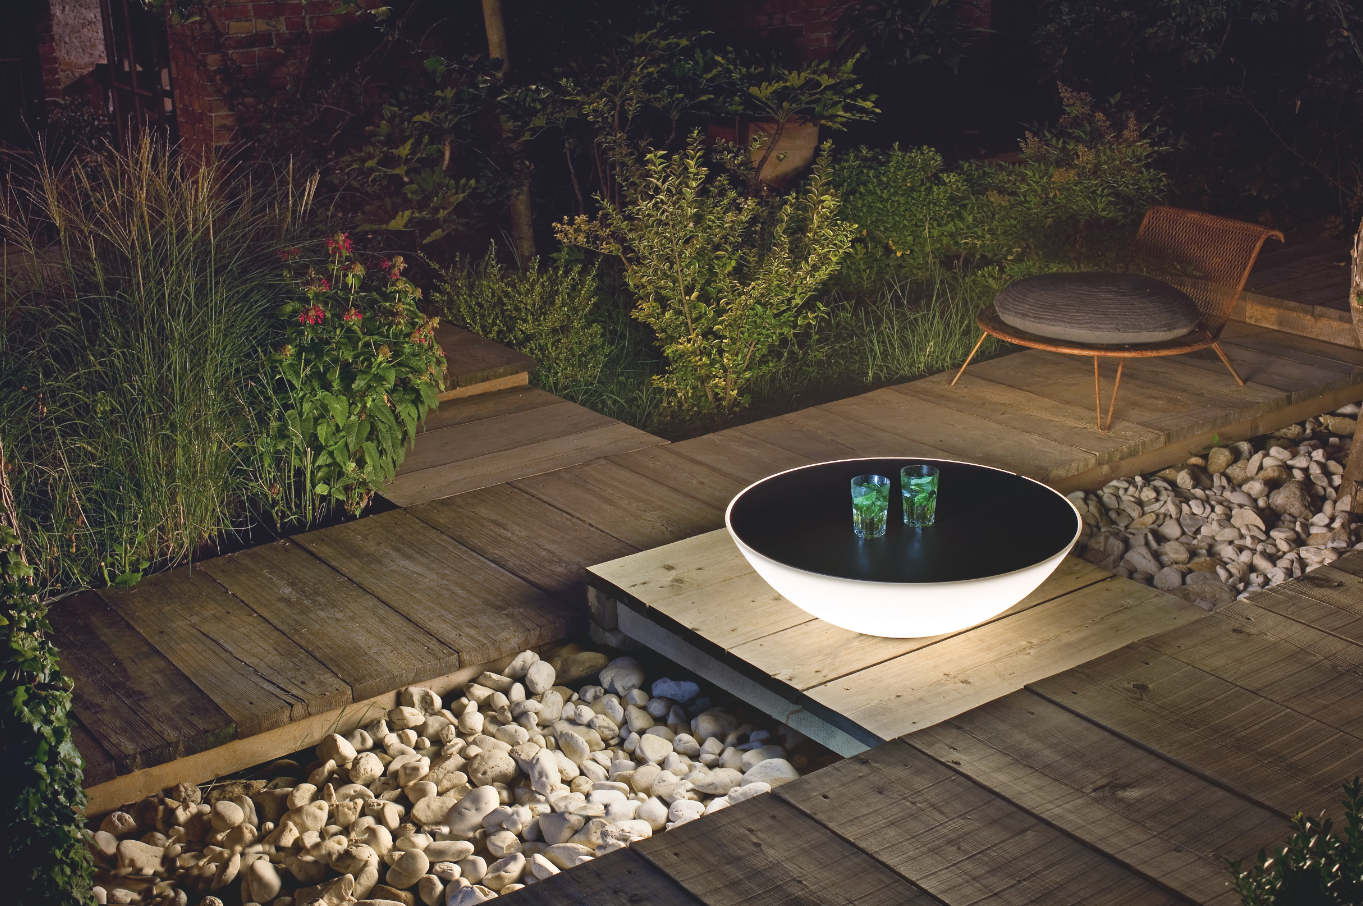 Solar Outdoor Light - Foscarini